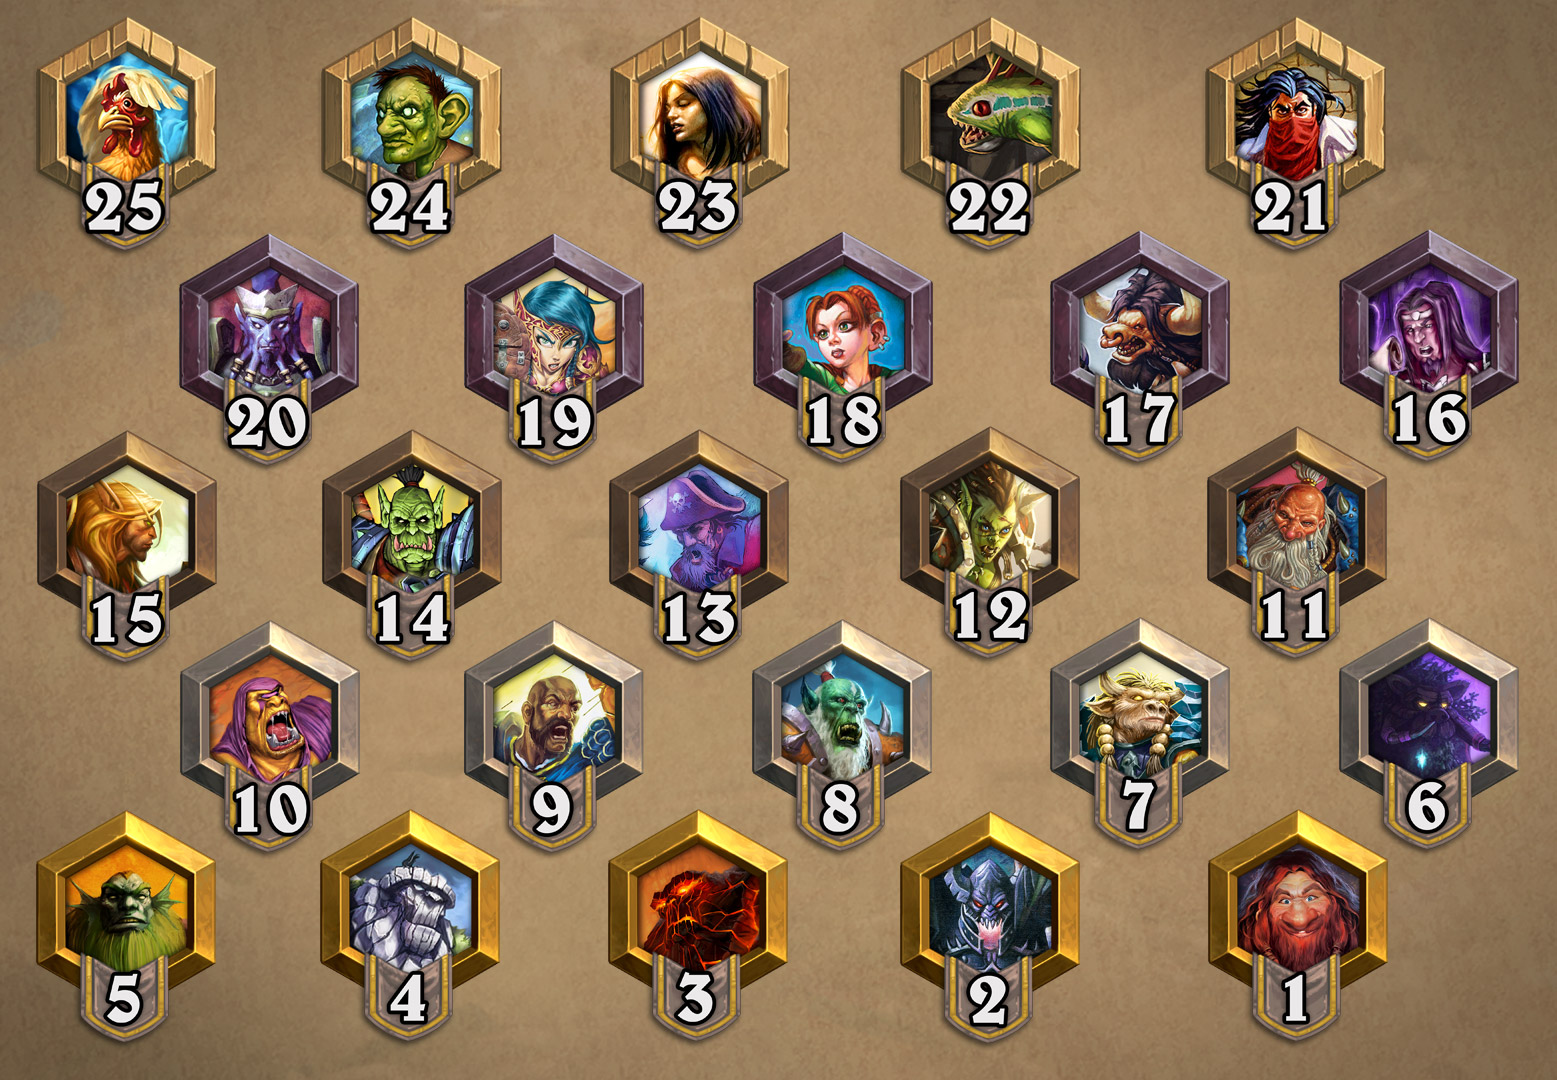 From Chicken to Legend -- the journey to Hearthstone's top rank.